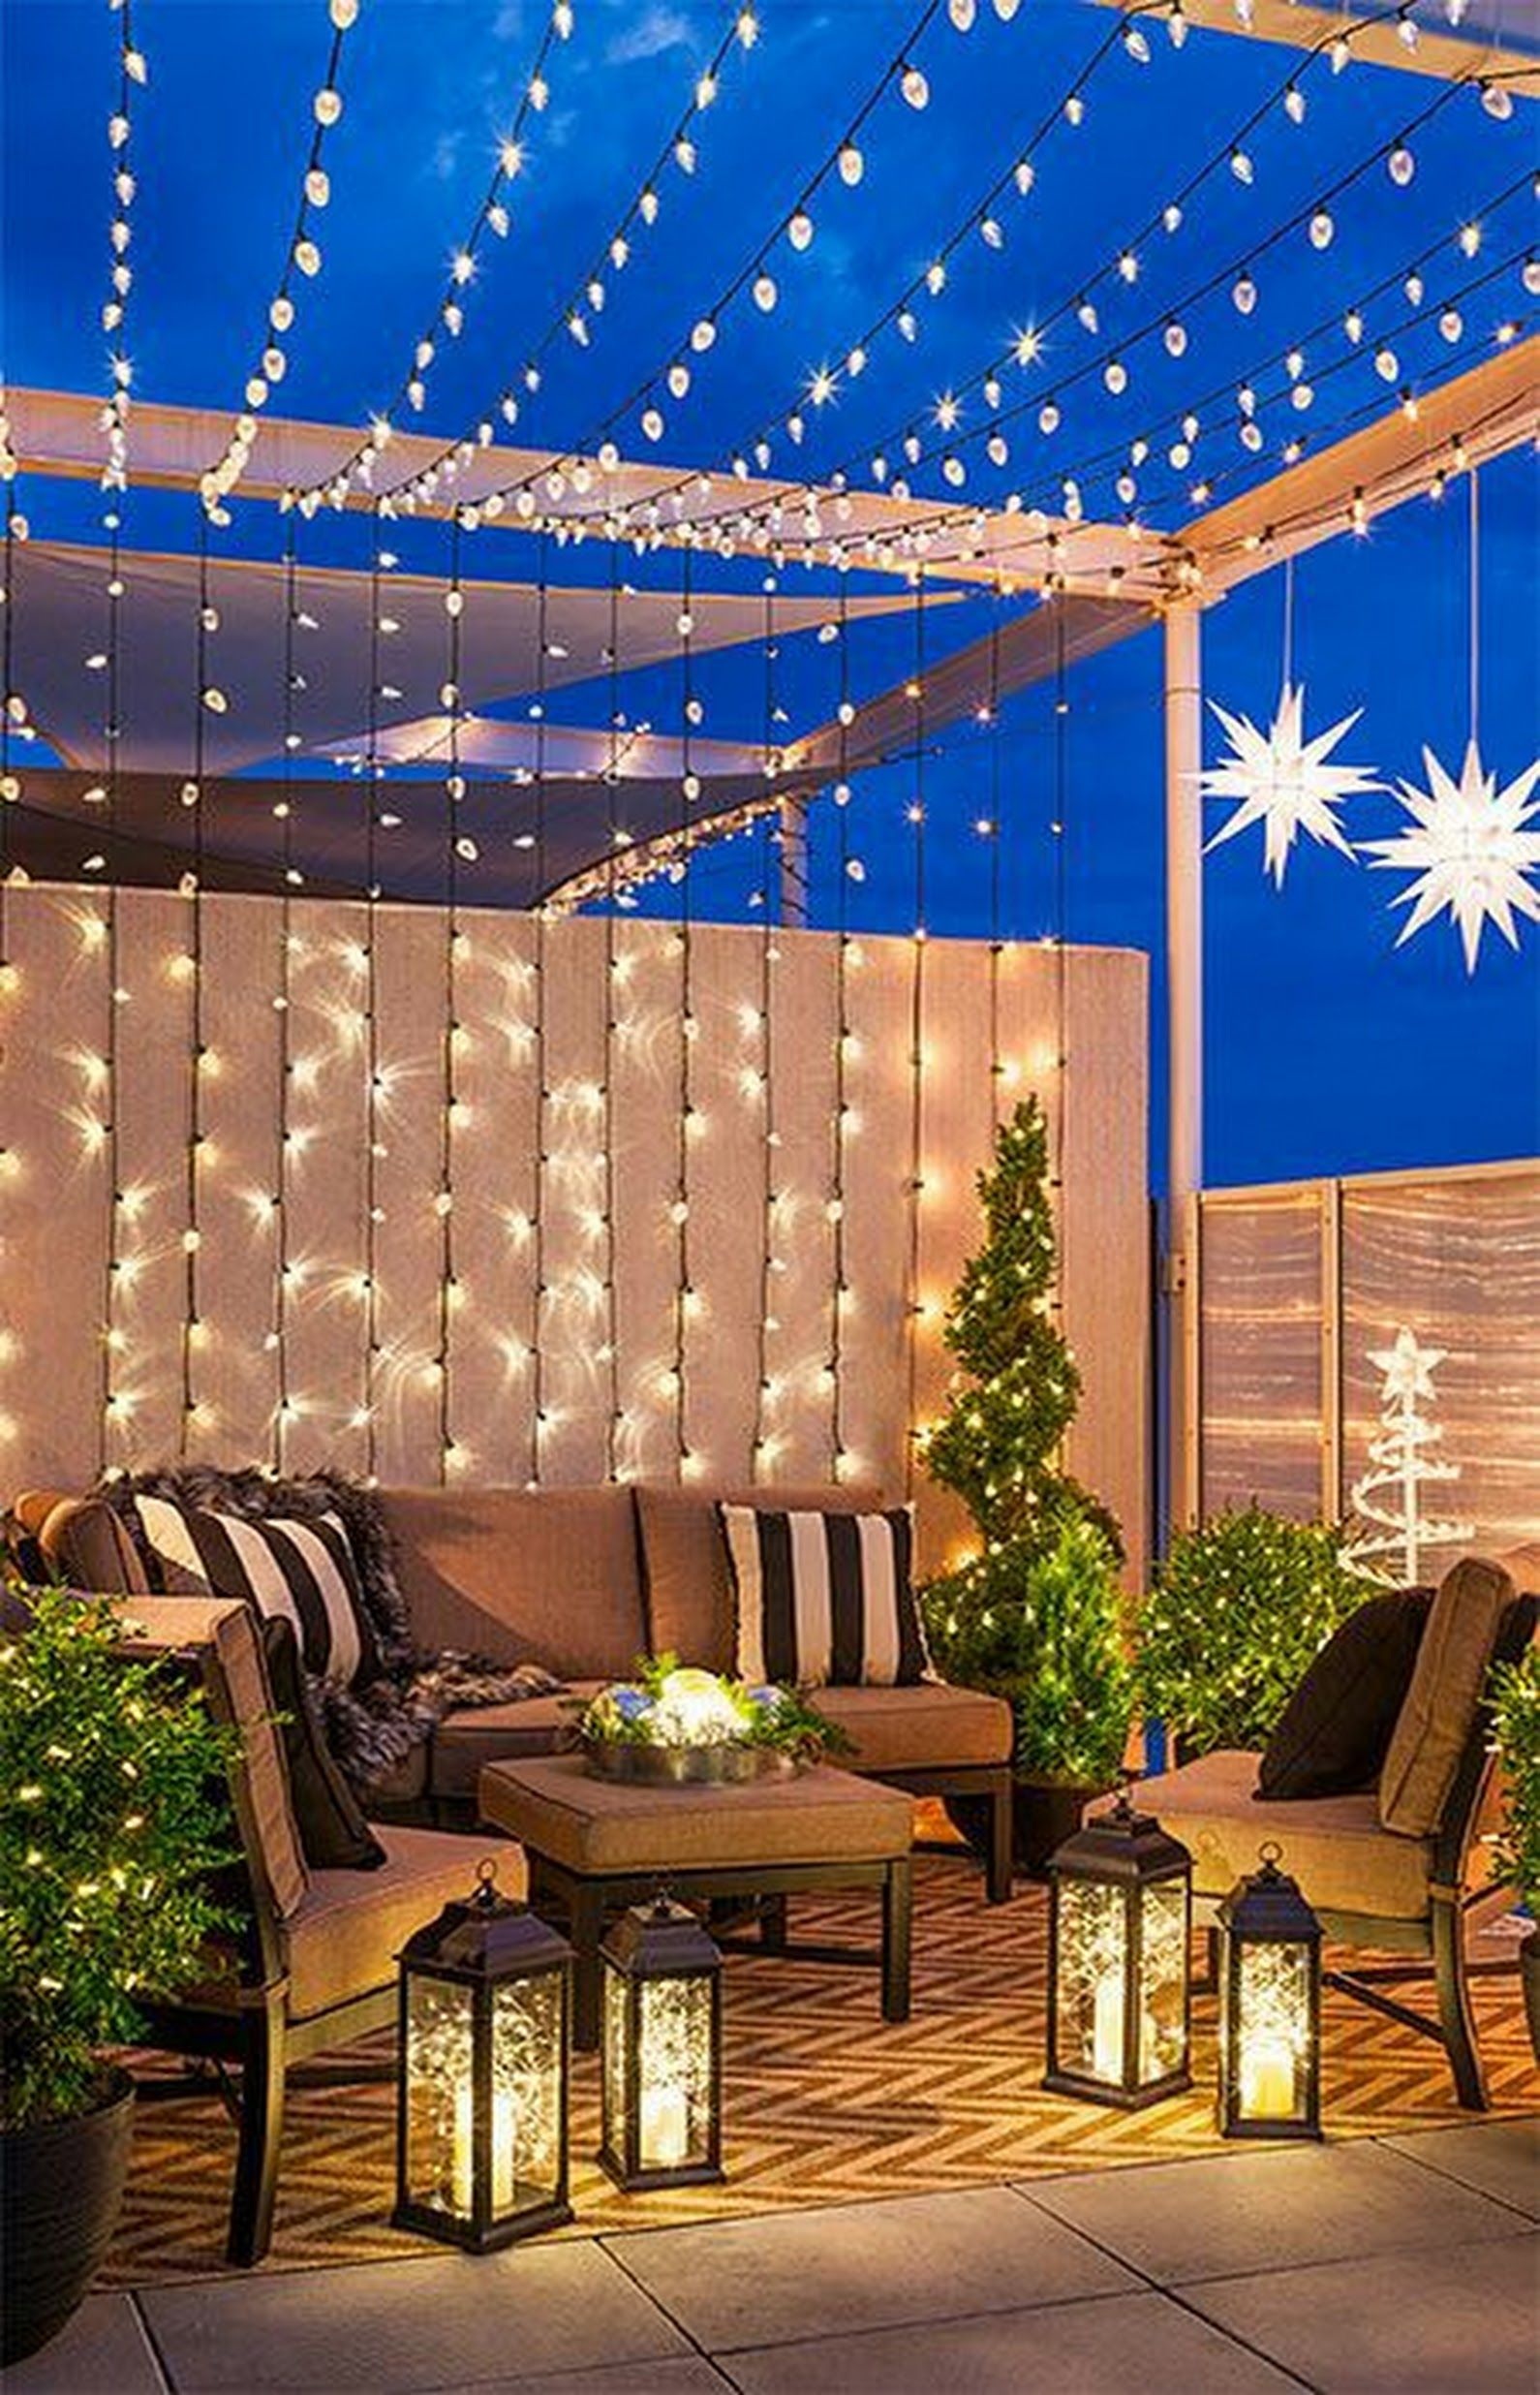 Merveilleux Let Your Light Shine This Christmas Season! Christmas String Lights And  Lanterns Light Up A Balcony, Deck Or Patio For A Magical Outdoor Setting.